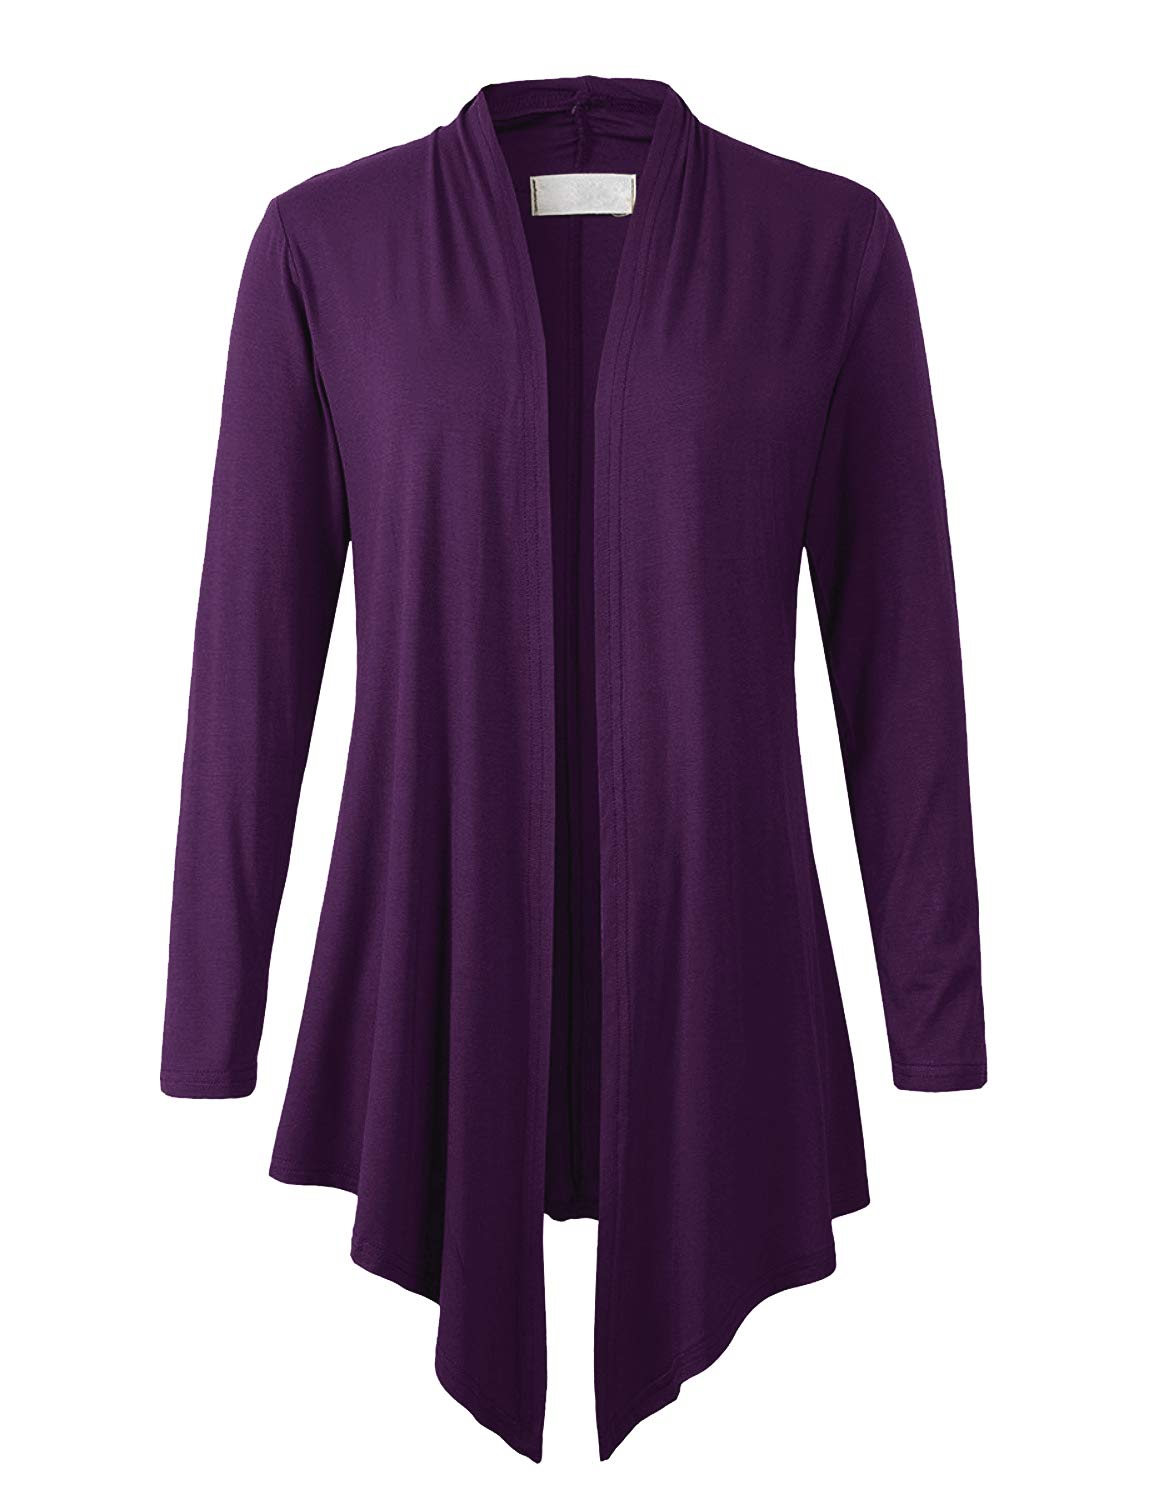 Eanklosco Women's Long Sleeve Drape Open-Front Cardigan Light Weight Irregular Hem Casual Tops (L, Purple)